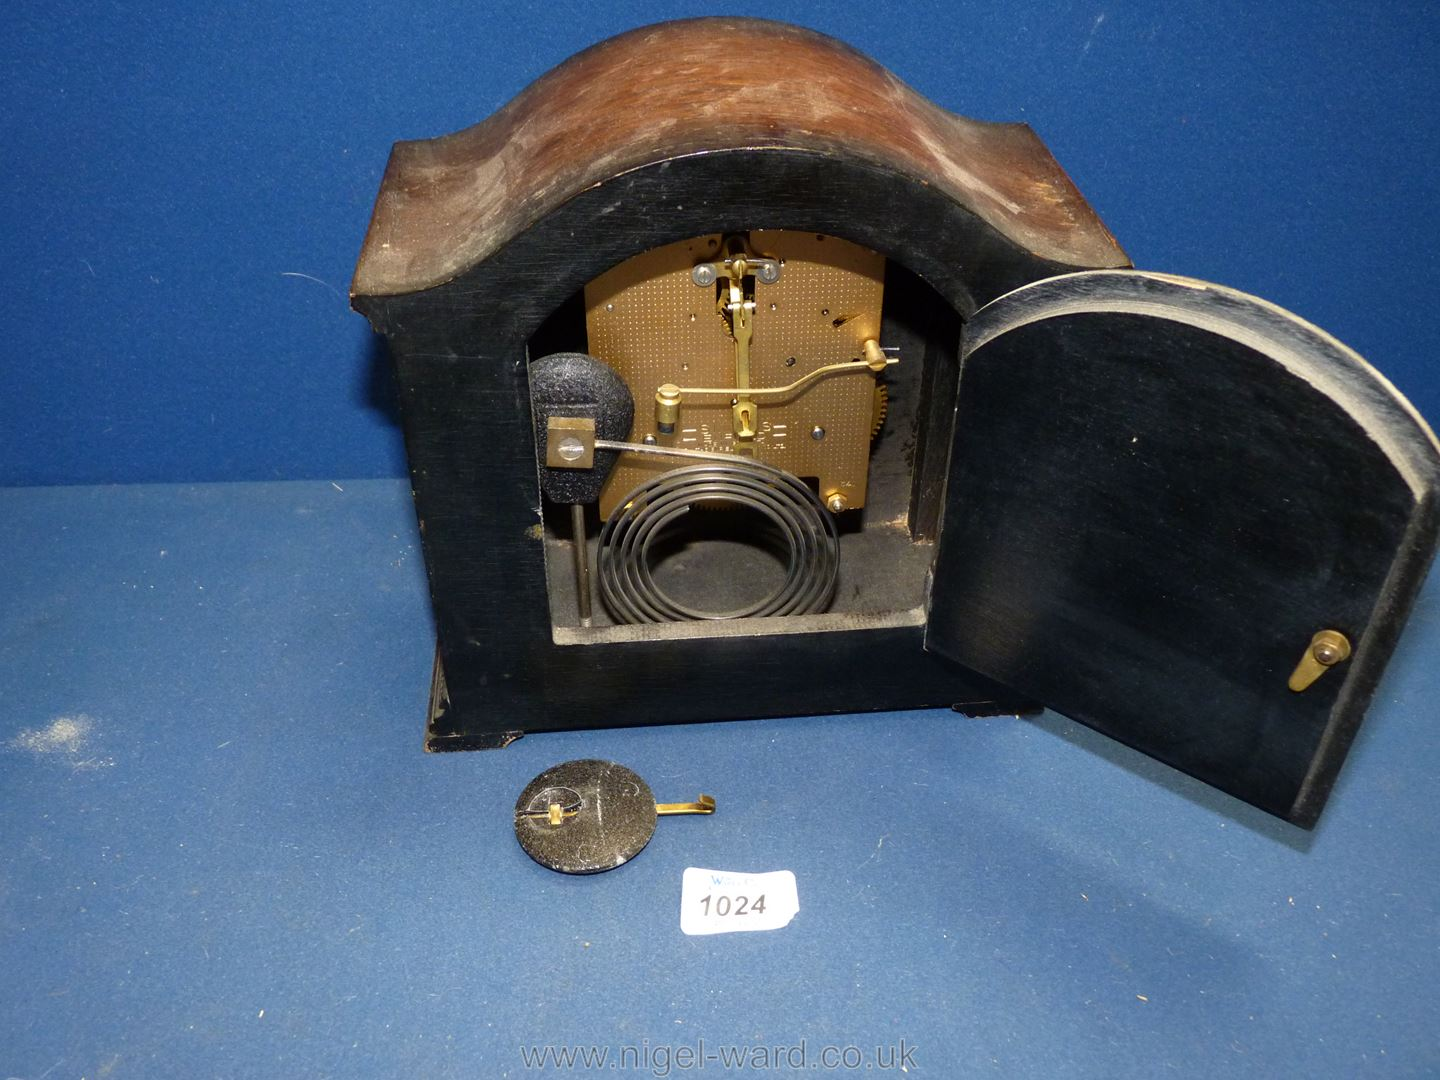 A Smiths Enfield mantle Clock with twist columns, pendulum present, - Image 2 of 2